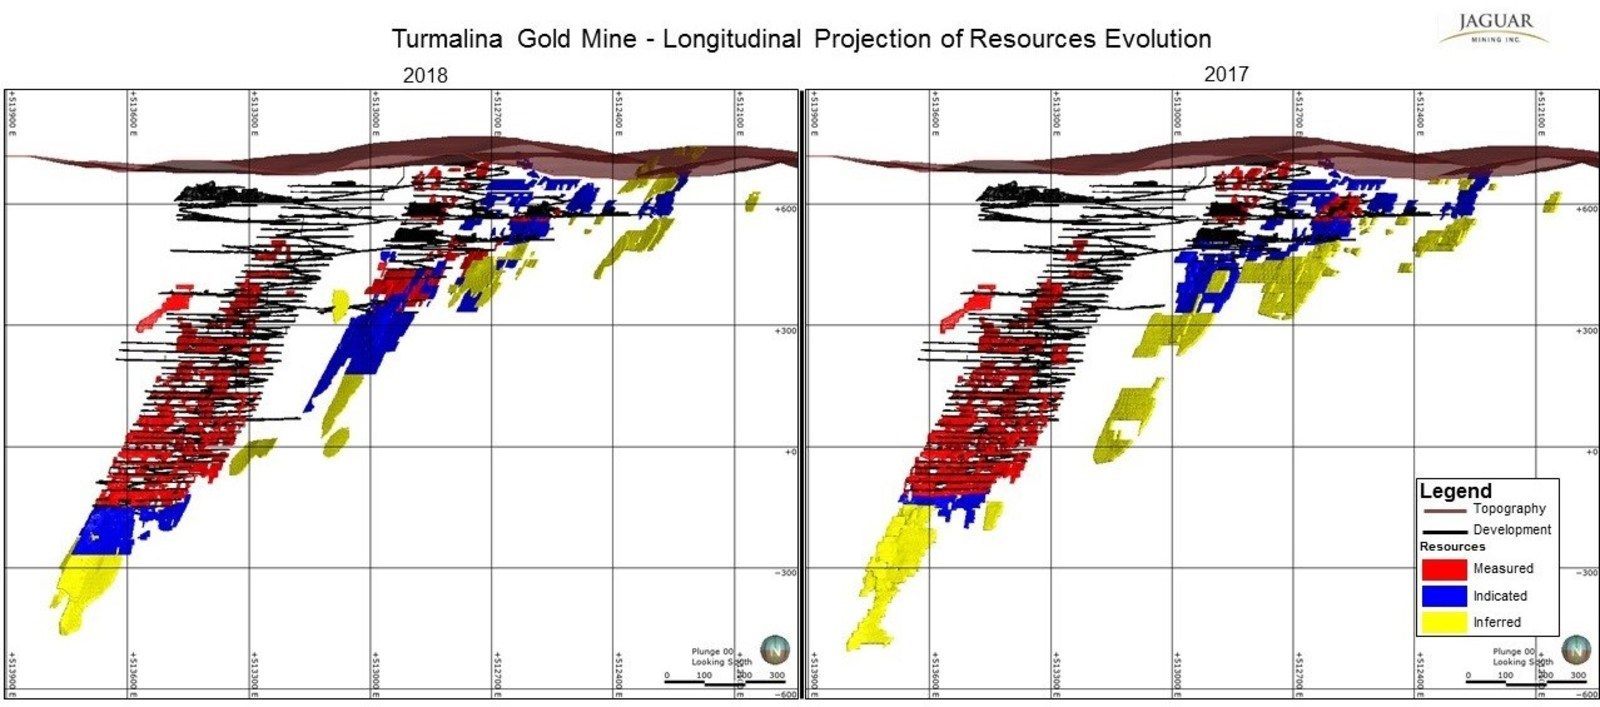 Figure 3: The distribution of Mineral Resources at Turmalina Gold Mine as at December 31, 2018, and December 31, 2017, seen from the hanging wall looking towards the south west.